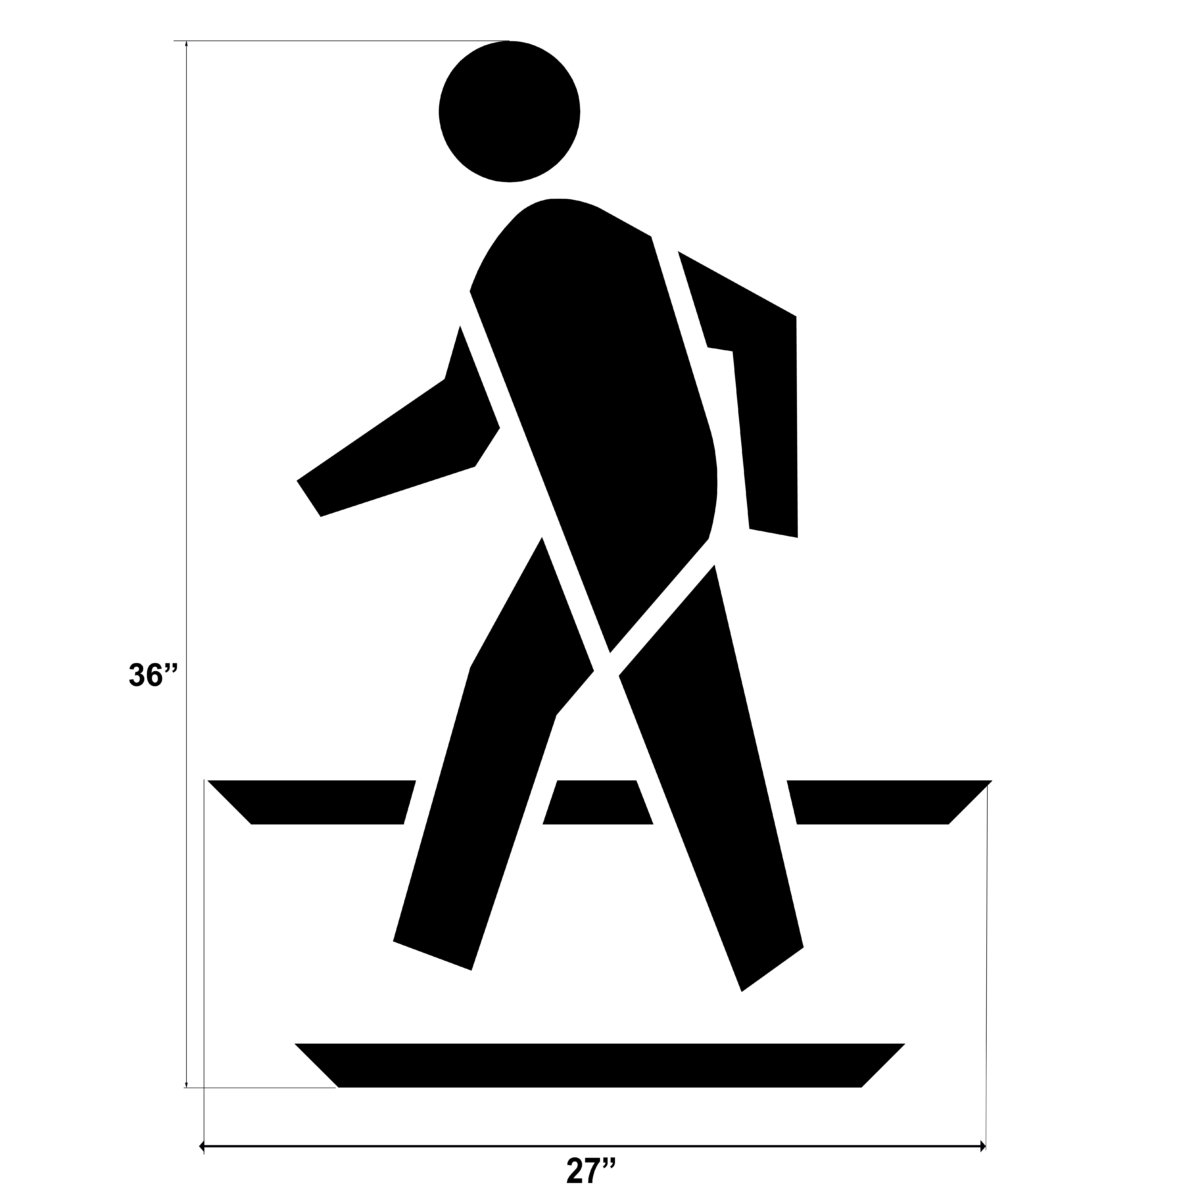 """Clearly mark pedestrian crossing areas with ourFederal Pedestrian Symbol. Each stencil is made of our thick, durable PolyTough™ plastic and meets Federal and DOT specifications. Use over and over again with a crisp clean line every time.Don't forget to check out our <a href=""""https://www.newstripe.com/product/federal-bicycle-symbol/"""">federal bike lane stencil</a>. <strong><u>1/8″ (125mil) – Professional grade</u></strong> <ul> <li>The thickest and most durable stencil</li> <li>Will last a lifetime with proper care</li> <li>Ideal for repetitive daily use</li> <li>Can use high pressure hose for easy cleaning</li> <li>Lays flat and stays flat</li> <li><span style=""""color: #000000;""""><em>Lifetime warranty</em></span></li> </ul> <strong><u>1/16″(63mil) – Light-Duty</u></strong> <ul> <li>Economical and flexible</li> <li>Easy to clean</li> <li>Great for curves and uneven surfaces</li> <li>Perfect for one time projects or occasional use</li> </ul>"""